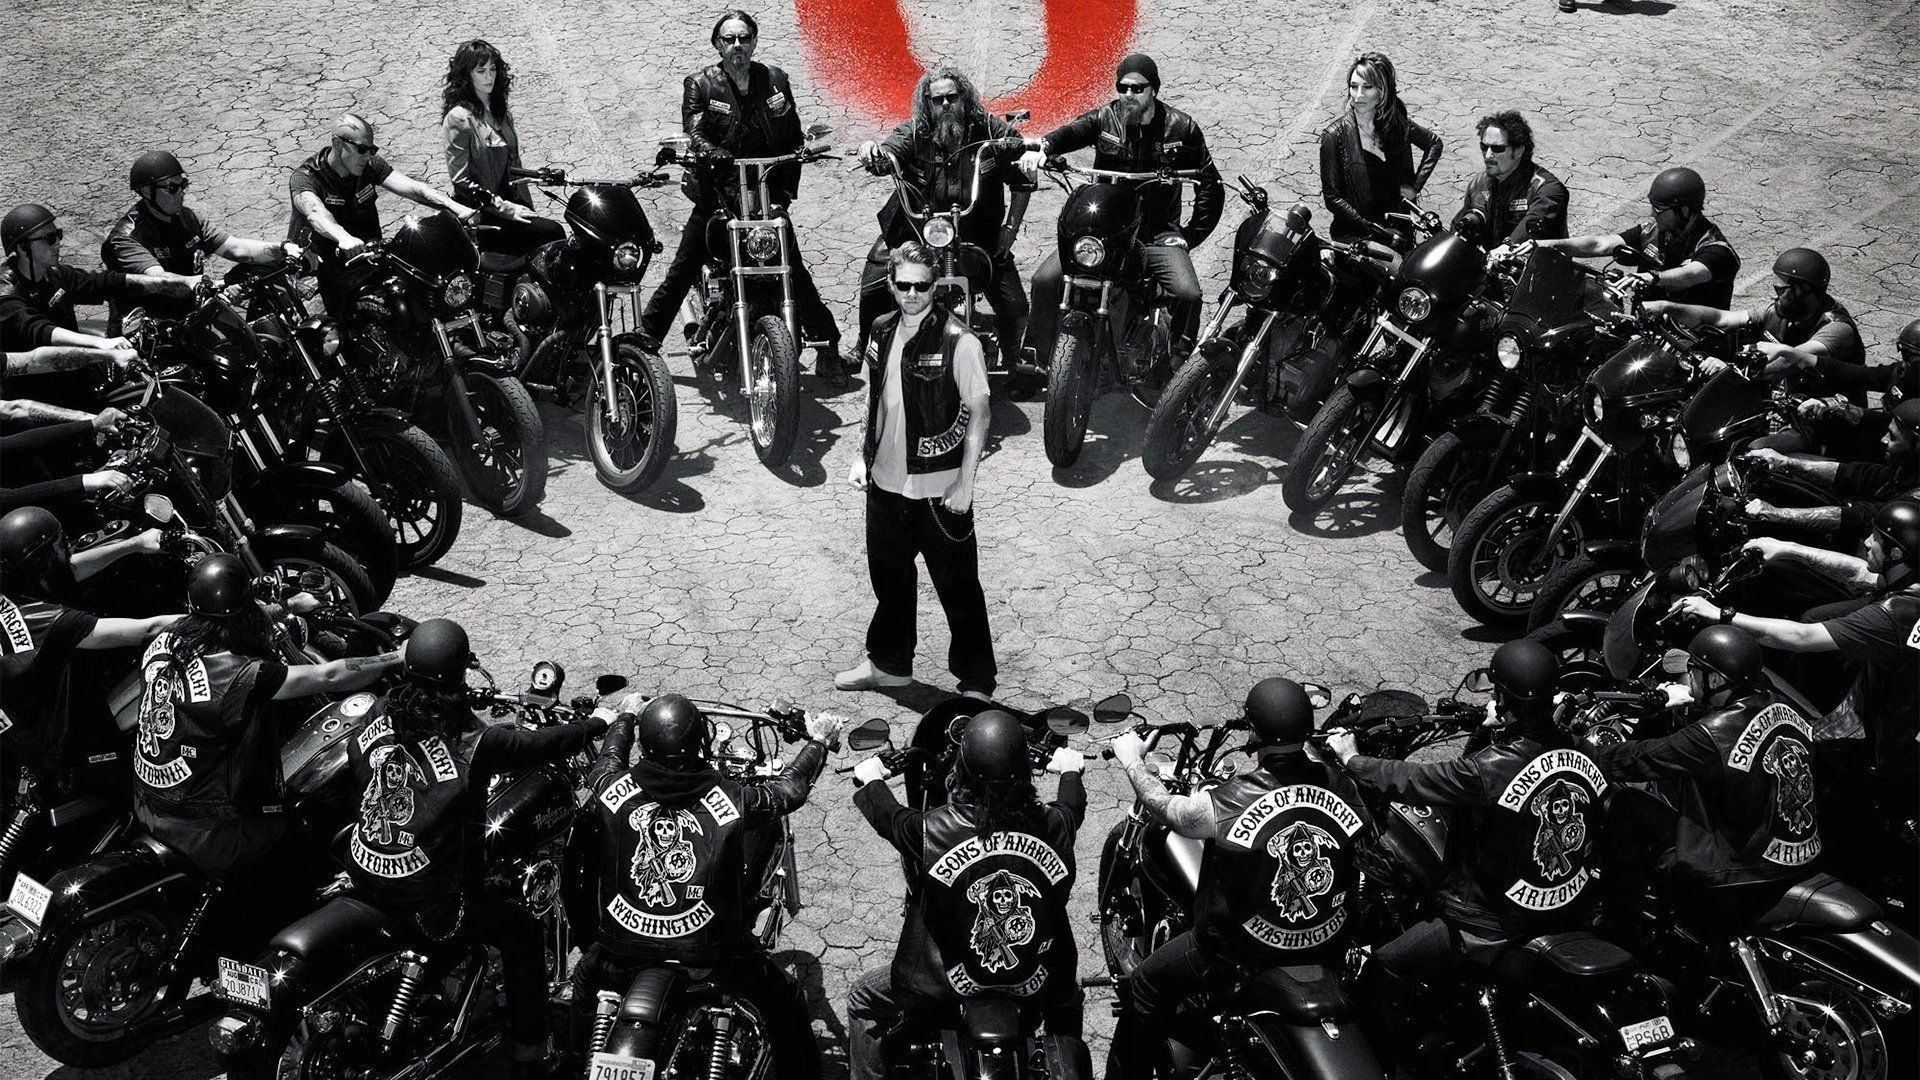 10 top sons of anarchy wallpapers full hd 19201080 for pc title pictures sons of anarchy hd wallpapers media file pixelstalk dimension 1920 x 1080 file type jpgjpeg voltagebd Choice Image